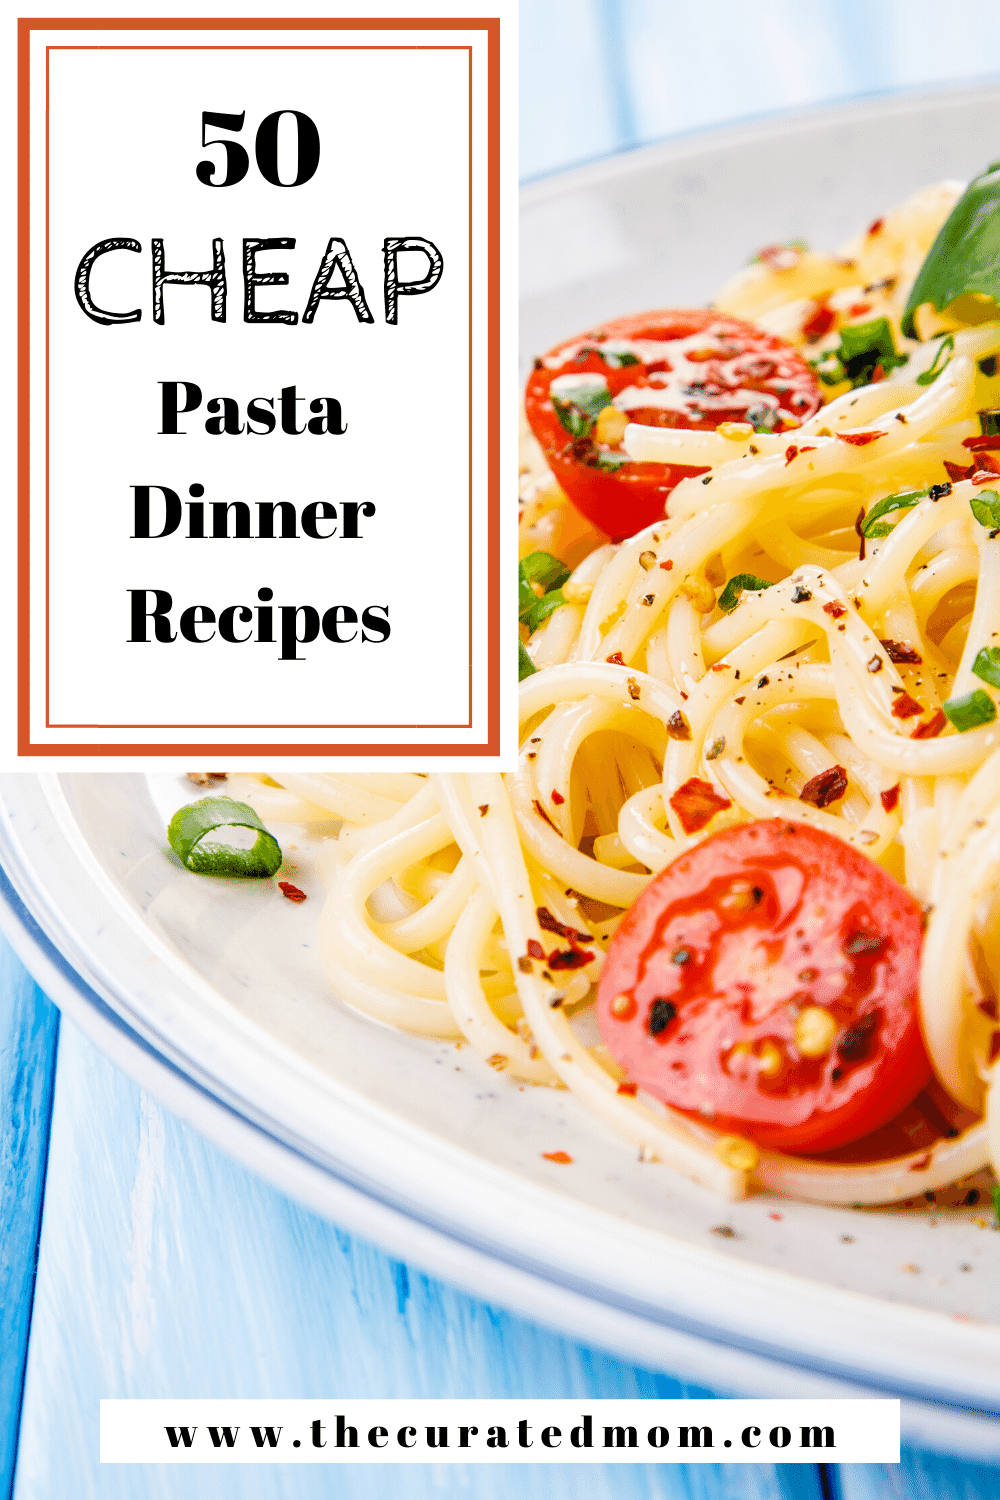 50 Cheap Pasta Recipes A Curated List Of 50 Budget Pasta Dishes To Save Money On Dinner Pasta Dinn In 2020 Cheap Pasta Recipes Yummy Pasta Recipes Yummy Pasta Dish